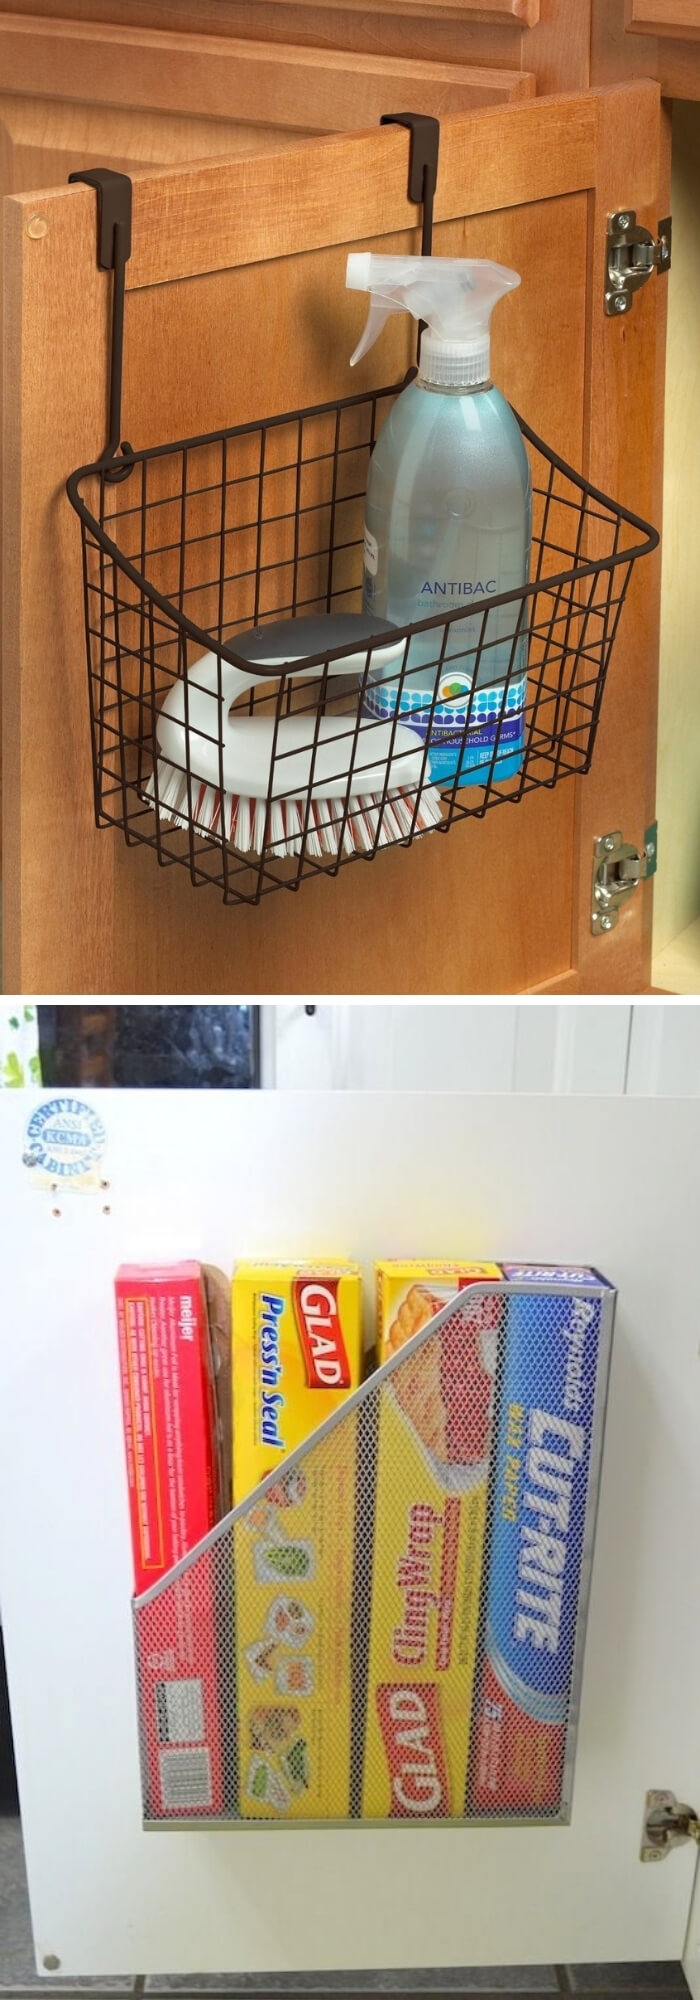 A basket that hooks over your cabinet door